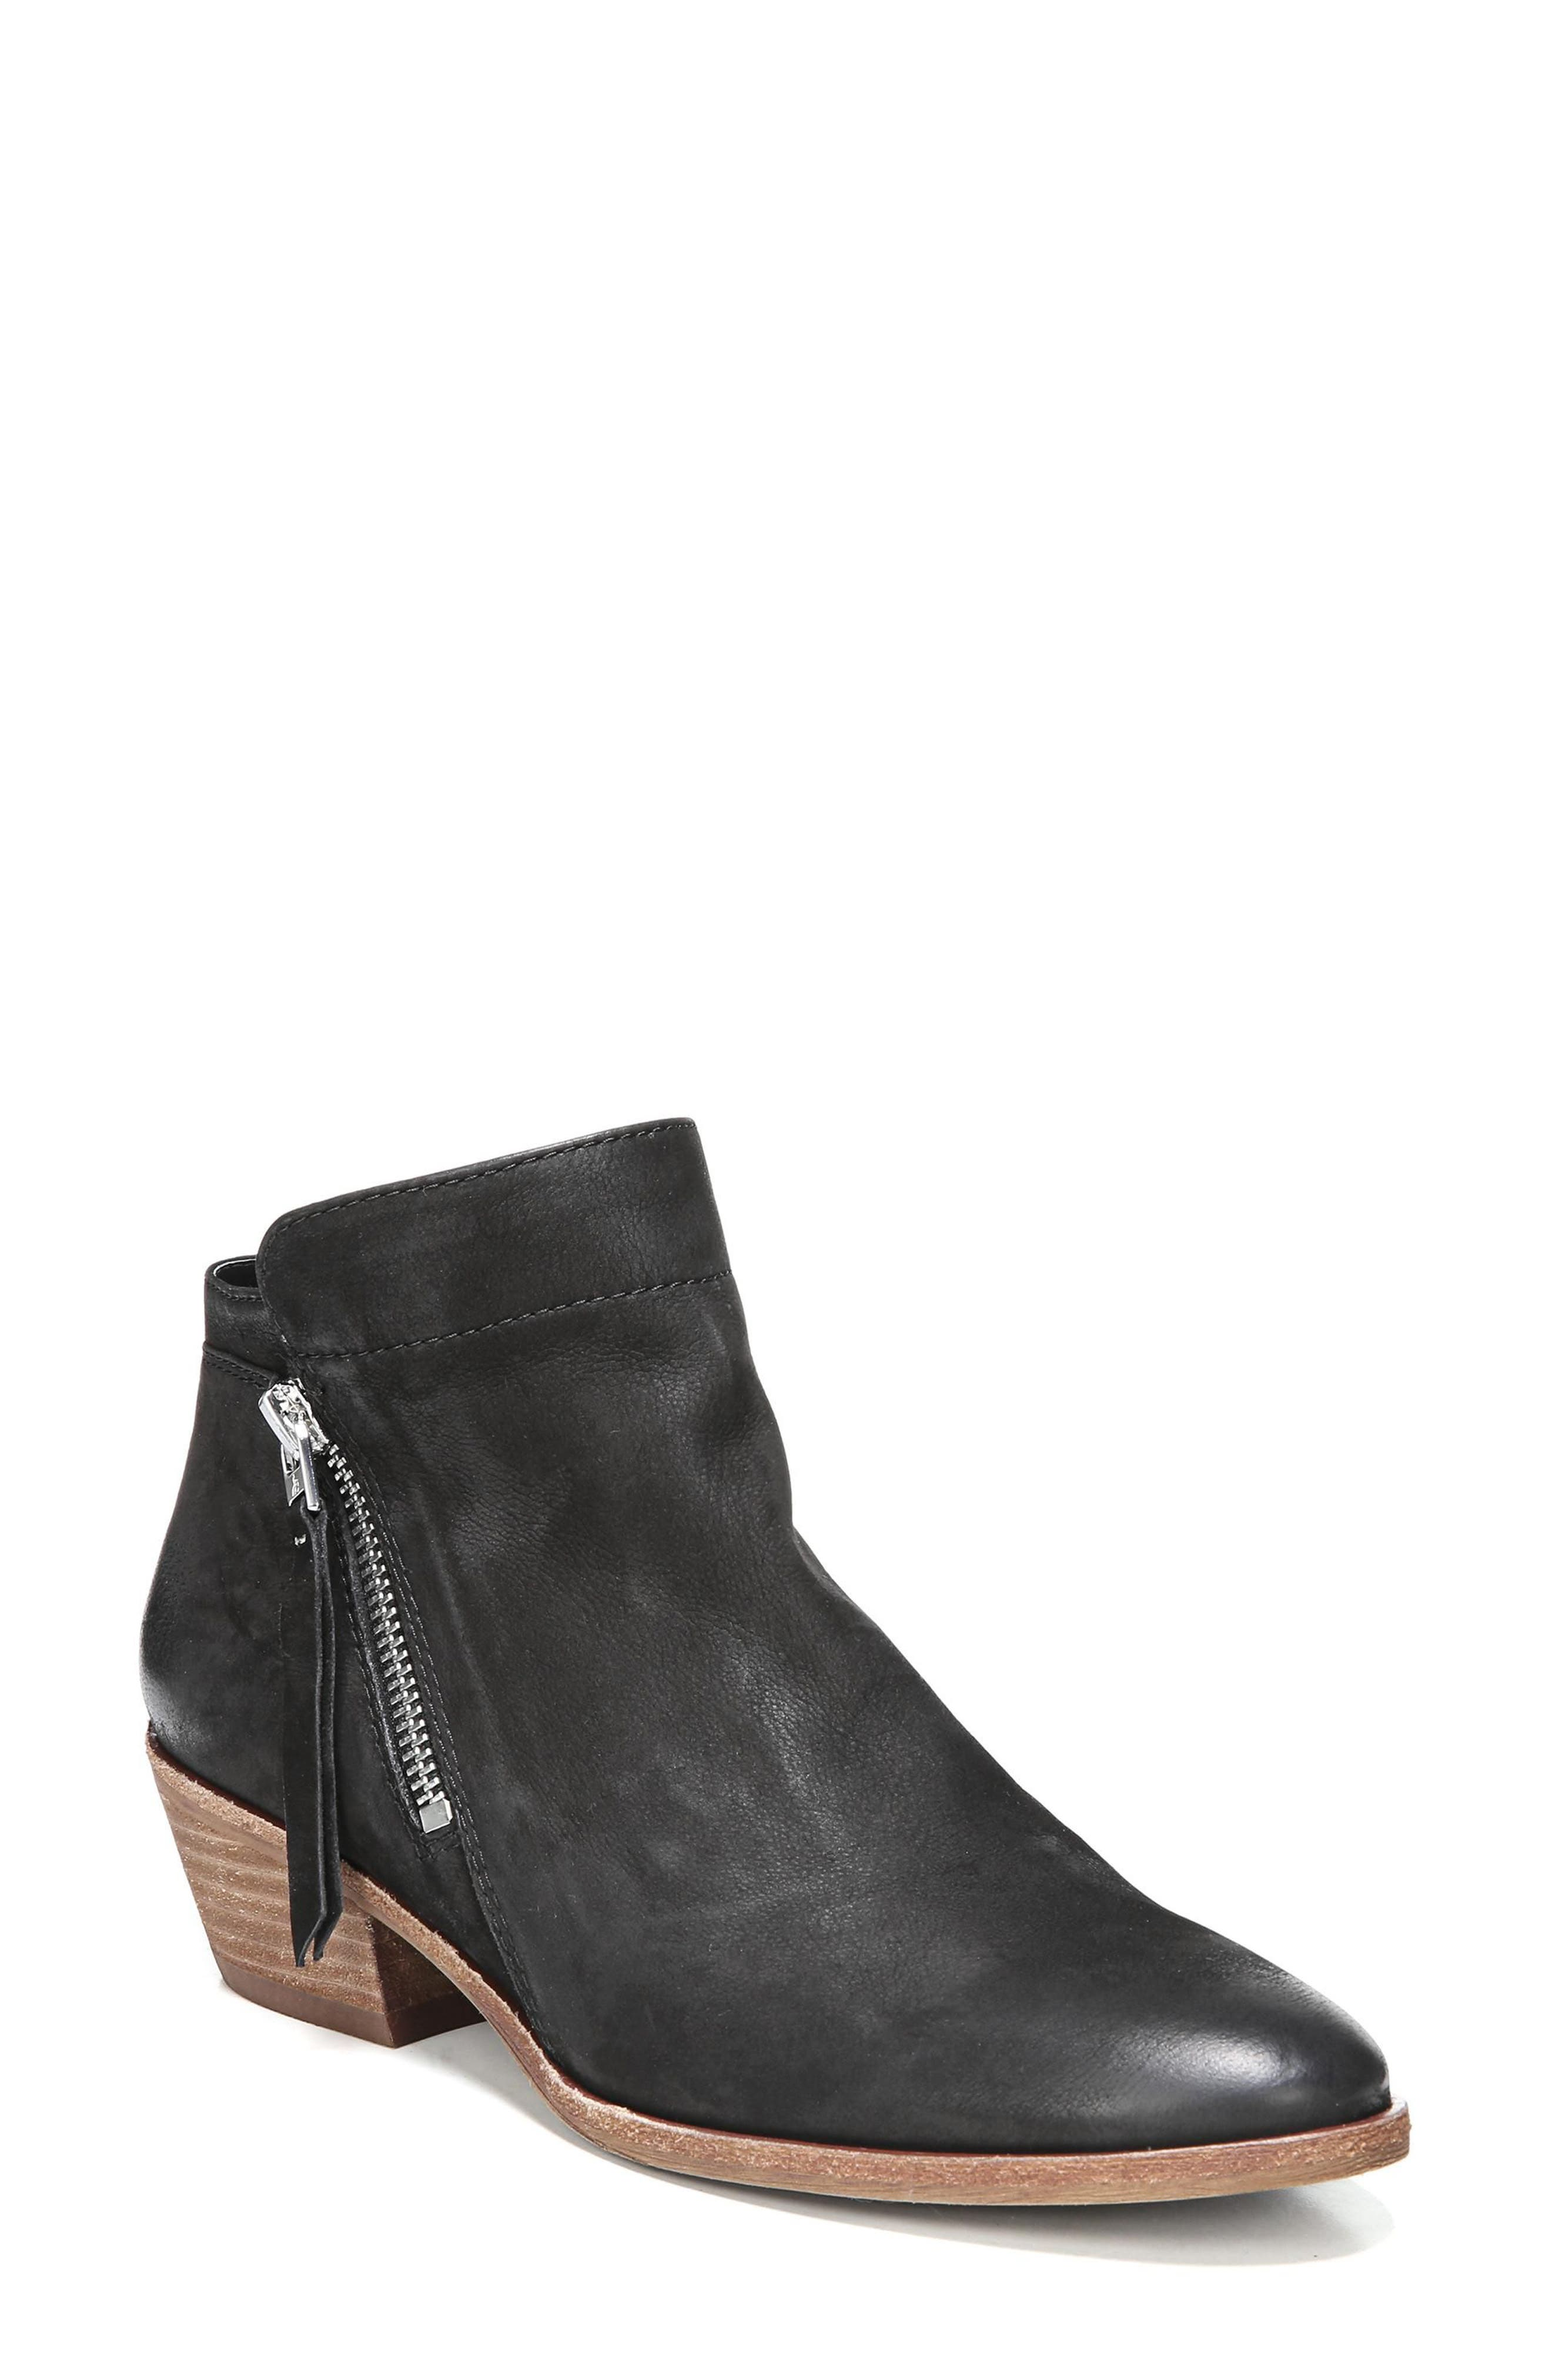 Sam Edelman Packer Bootie, Black